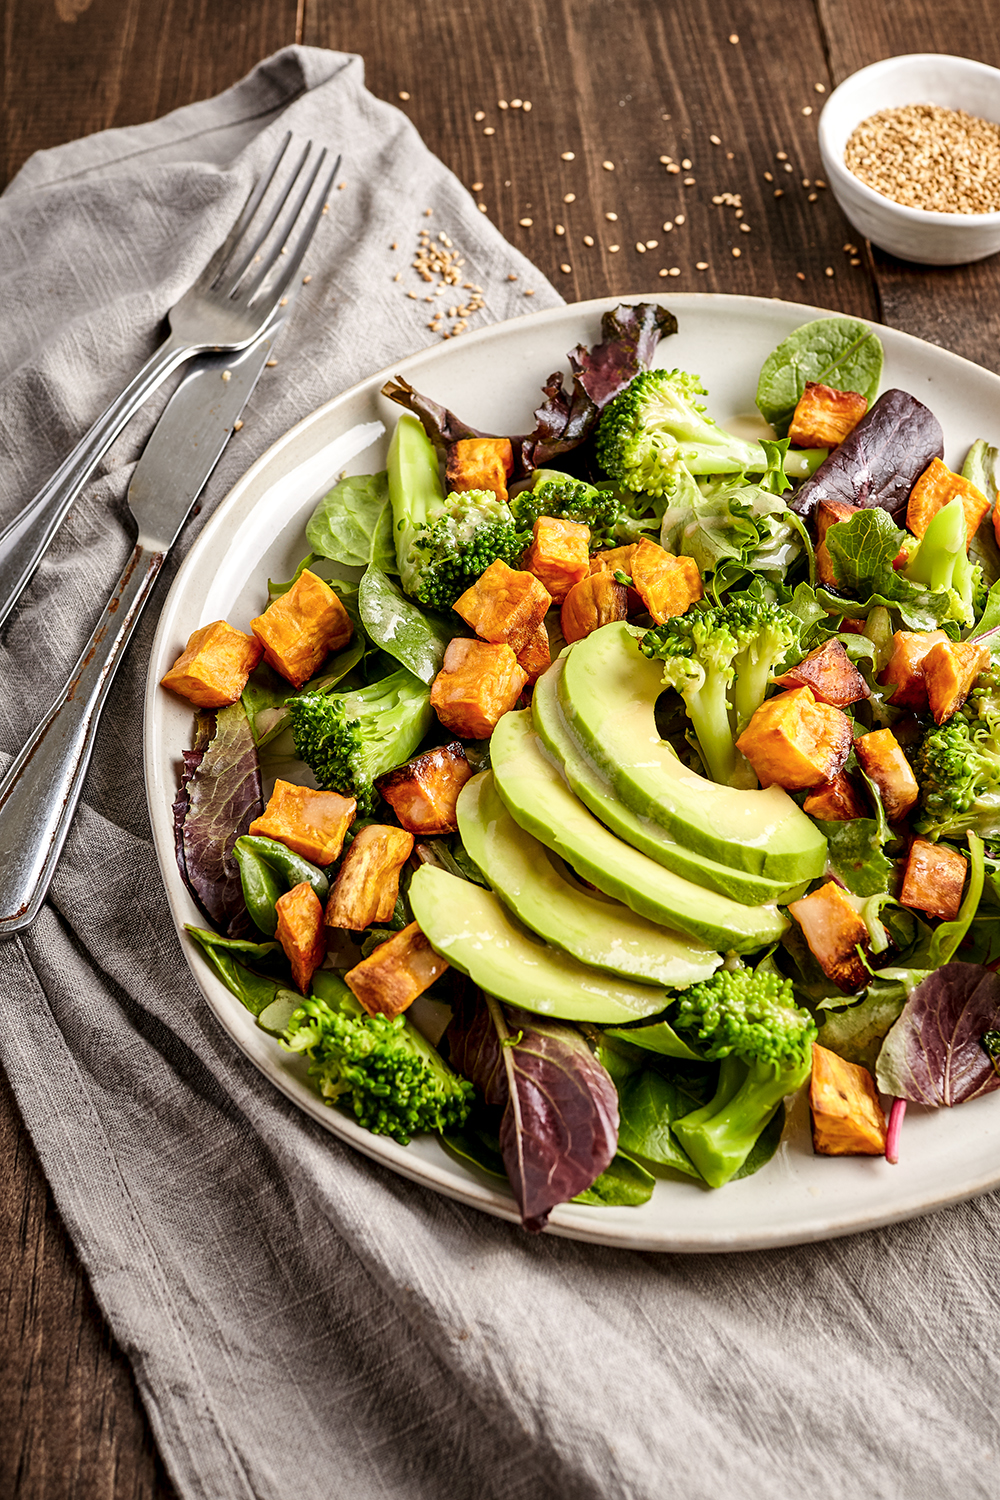 Roasted sweet potatoes and broccoli salad with honey tahini dressing